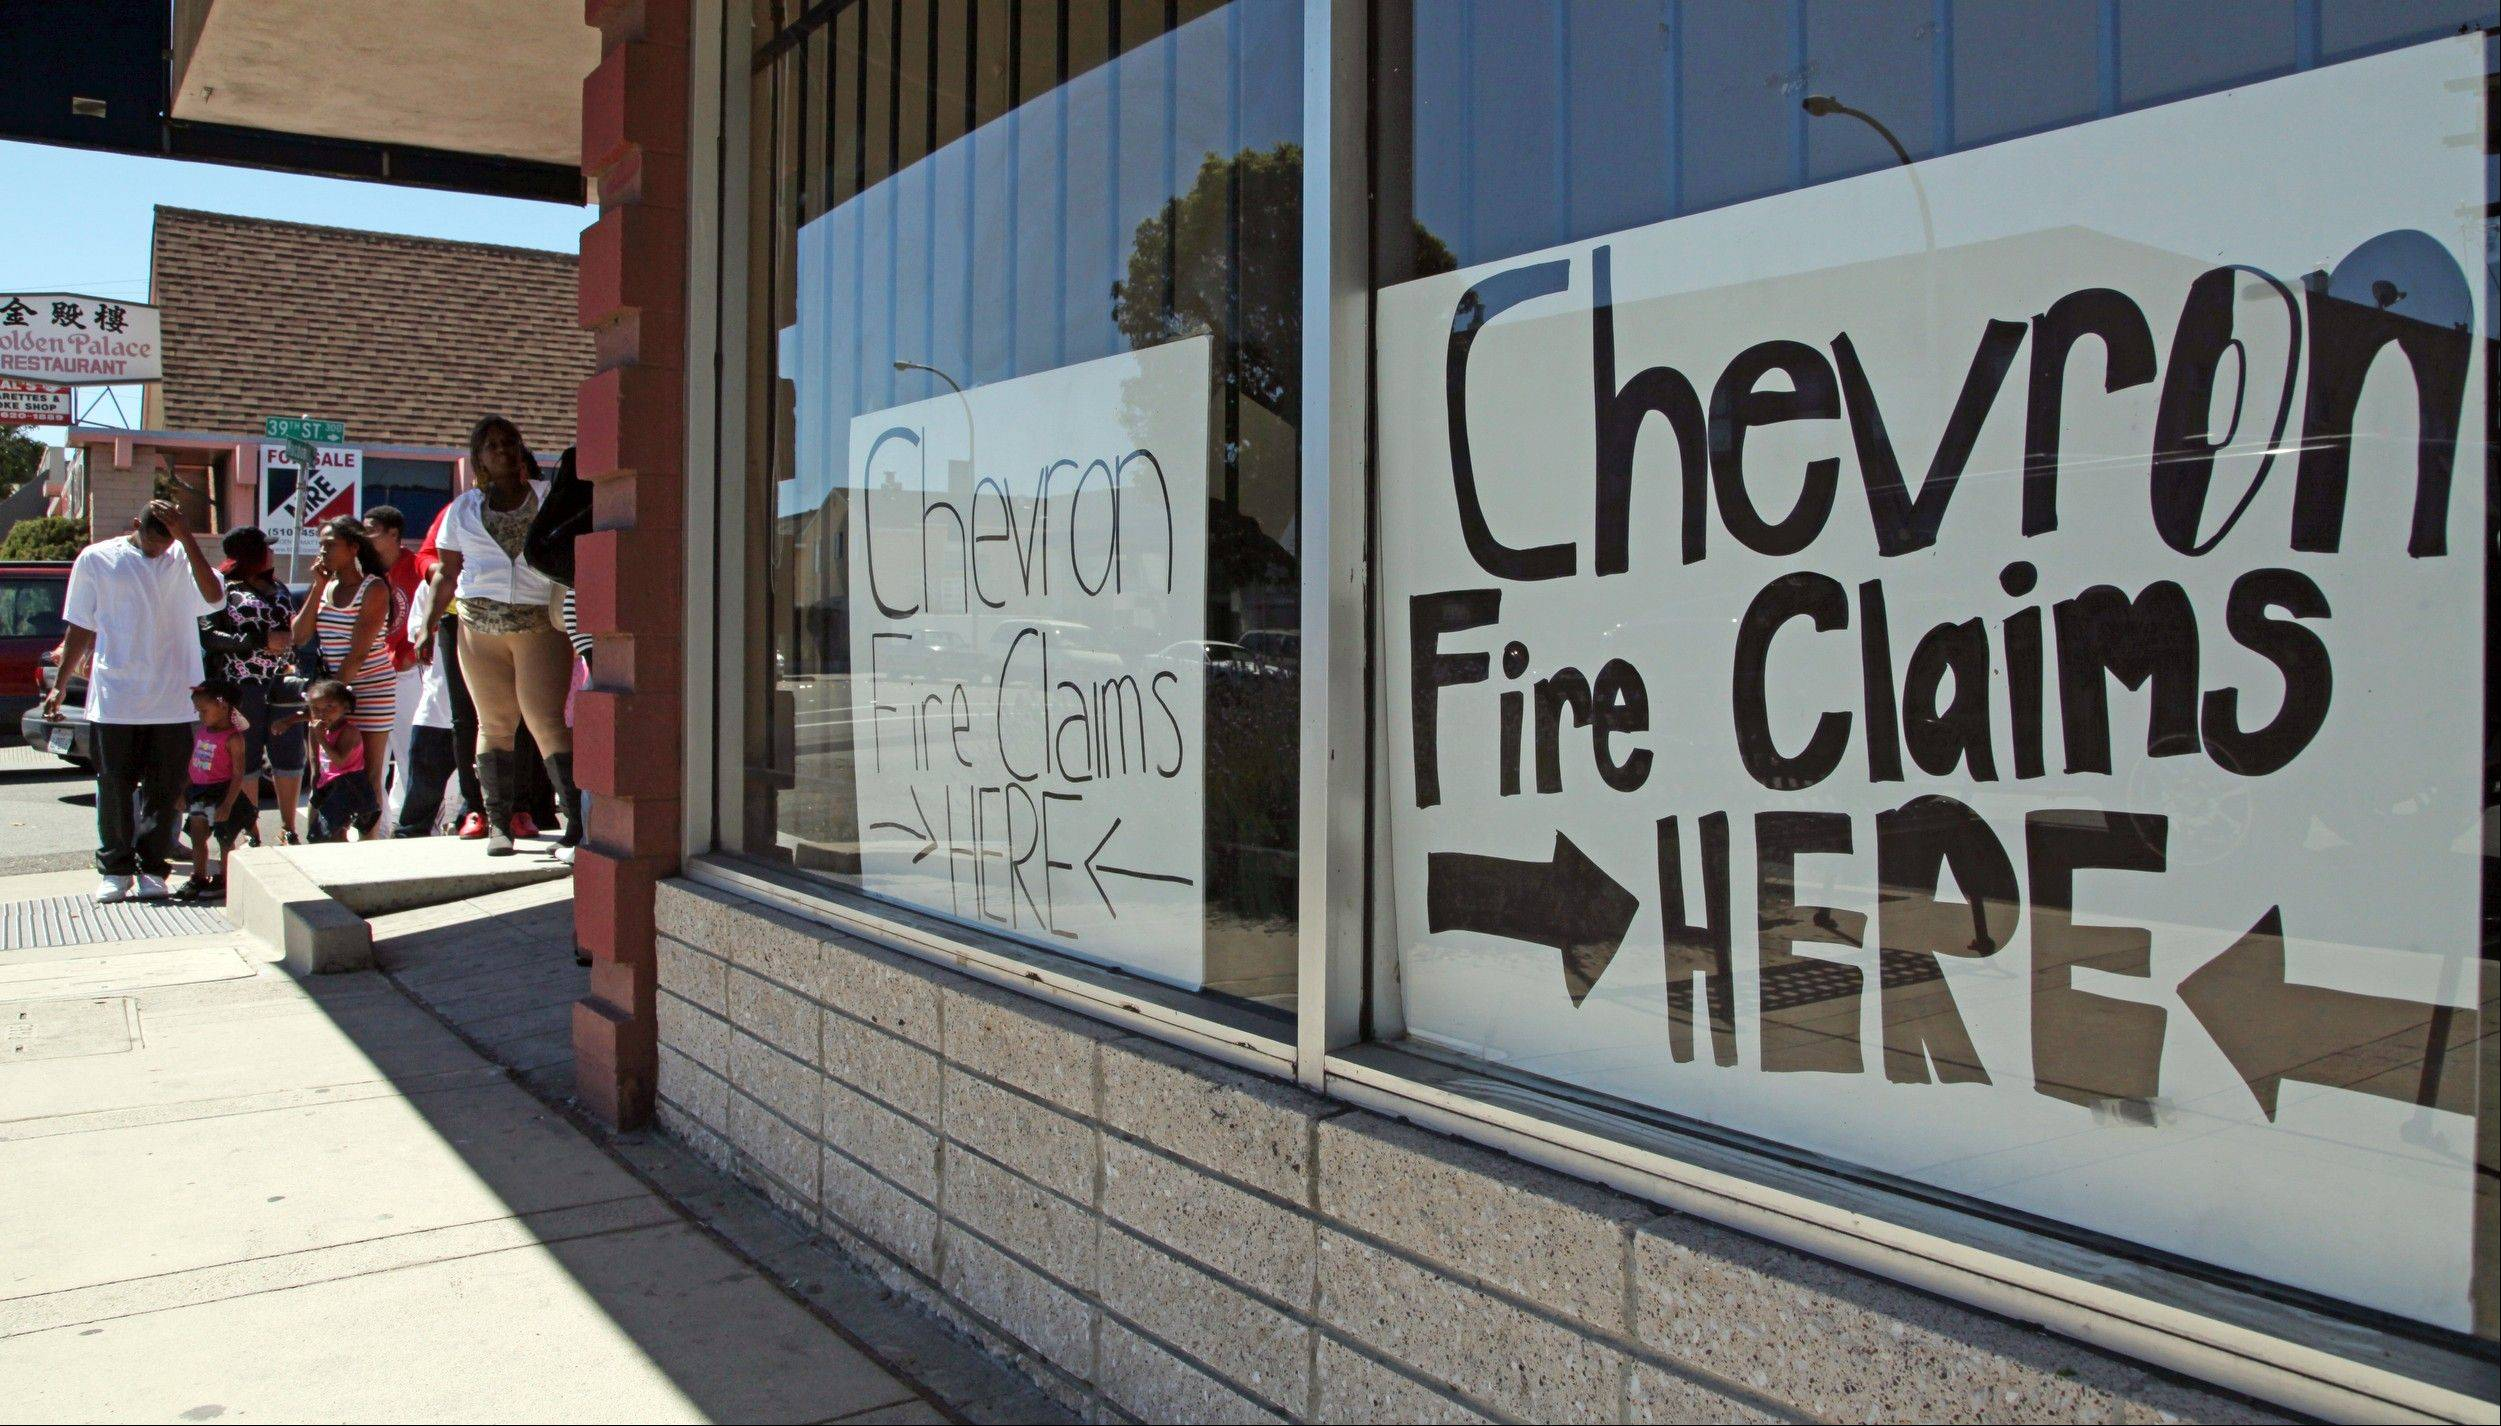 Area residents line up outside the injury attorney offices of R. Nicholas Haney in Richmond, Calif., on Tuesday, Aug. 7, 2012, to pick up a claim form in response to the Chevron refinery fire that impacted the community. Investigators are waiting for access to the charred crude oil unit of a Chevron refinery where a fire sent a towering plume of black smoke into San Francisco Bay area skies and pushed gas prices higher along the West Coast. Hundreds of people went to hospitals with respiratory issues during the fire at the Richmond refinery that produces 16 percent of the region's daily gasoline supply.